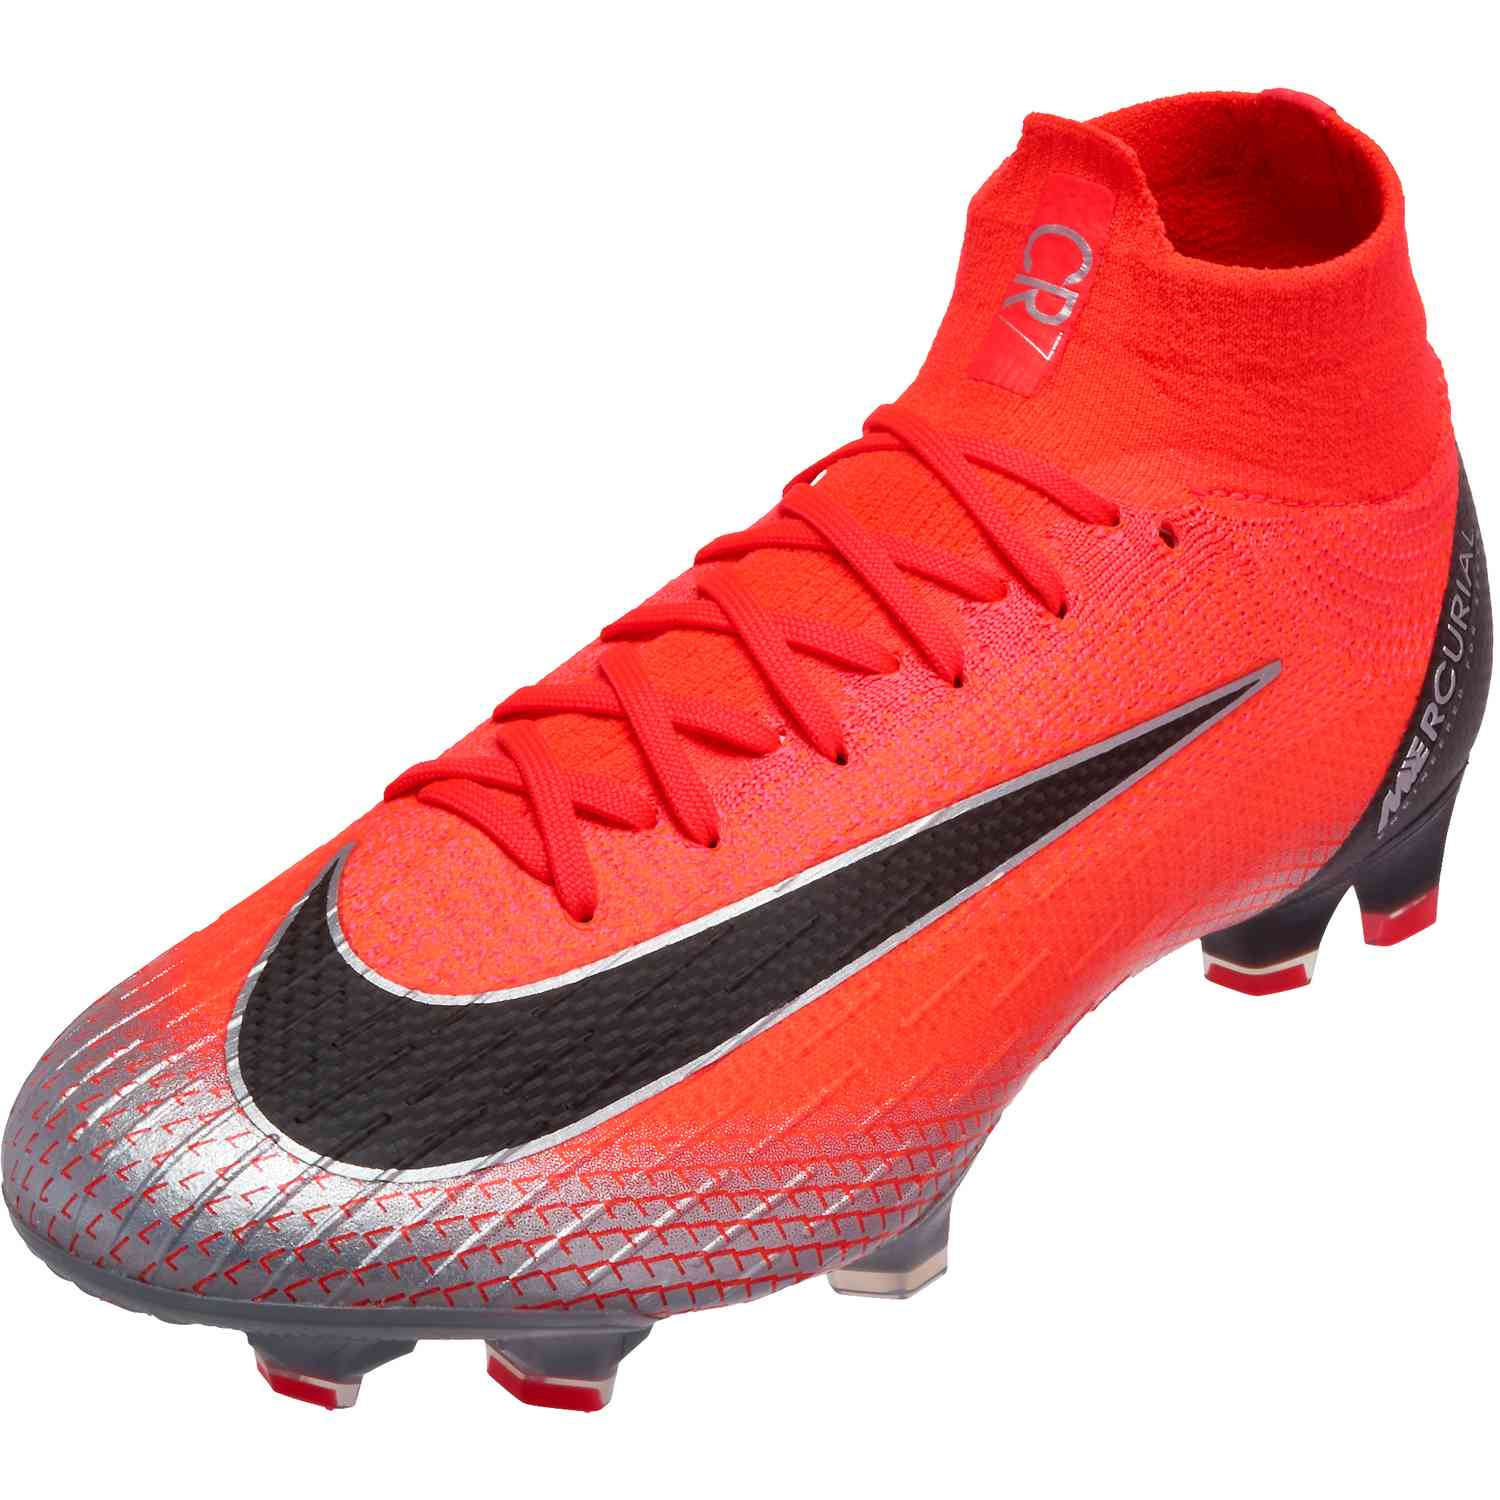 online store ef6ea 2a022 Nike CR7 Mercurial Superfly Elite - Chapter 7 - SoccerPro.com